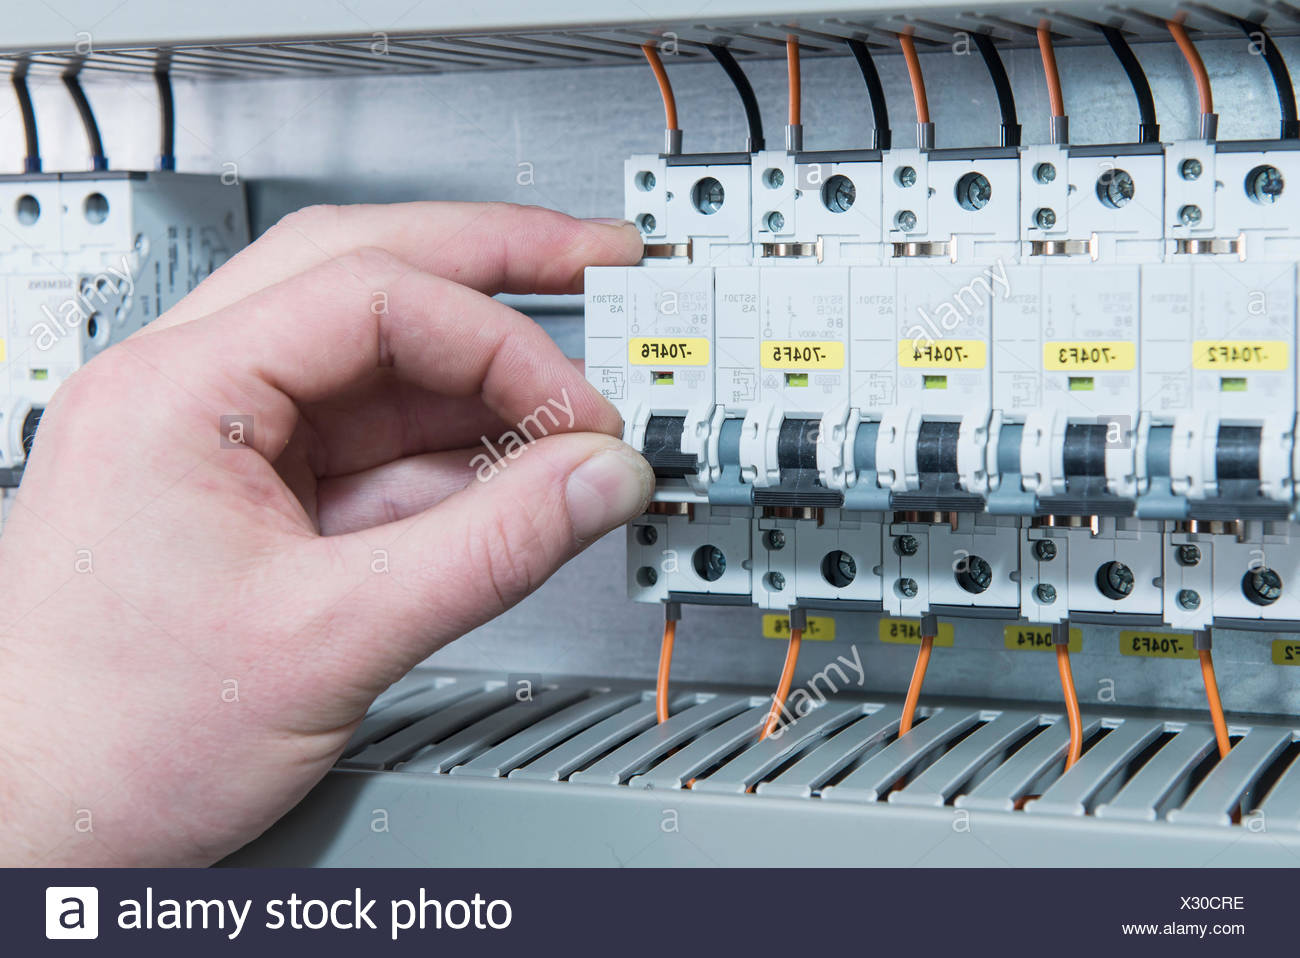 hight resolution of german fuse box wiring diagram show close up of electrician switching electrical fuse in distribution german